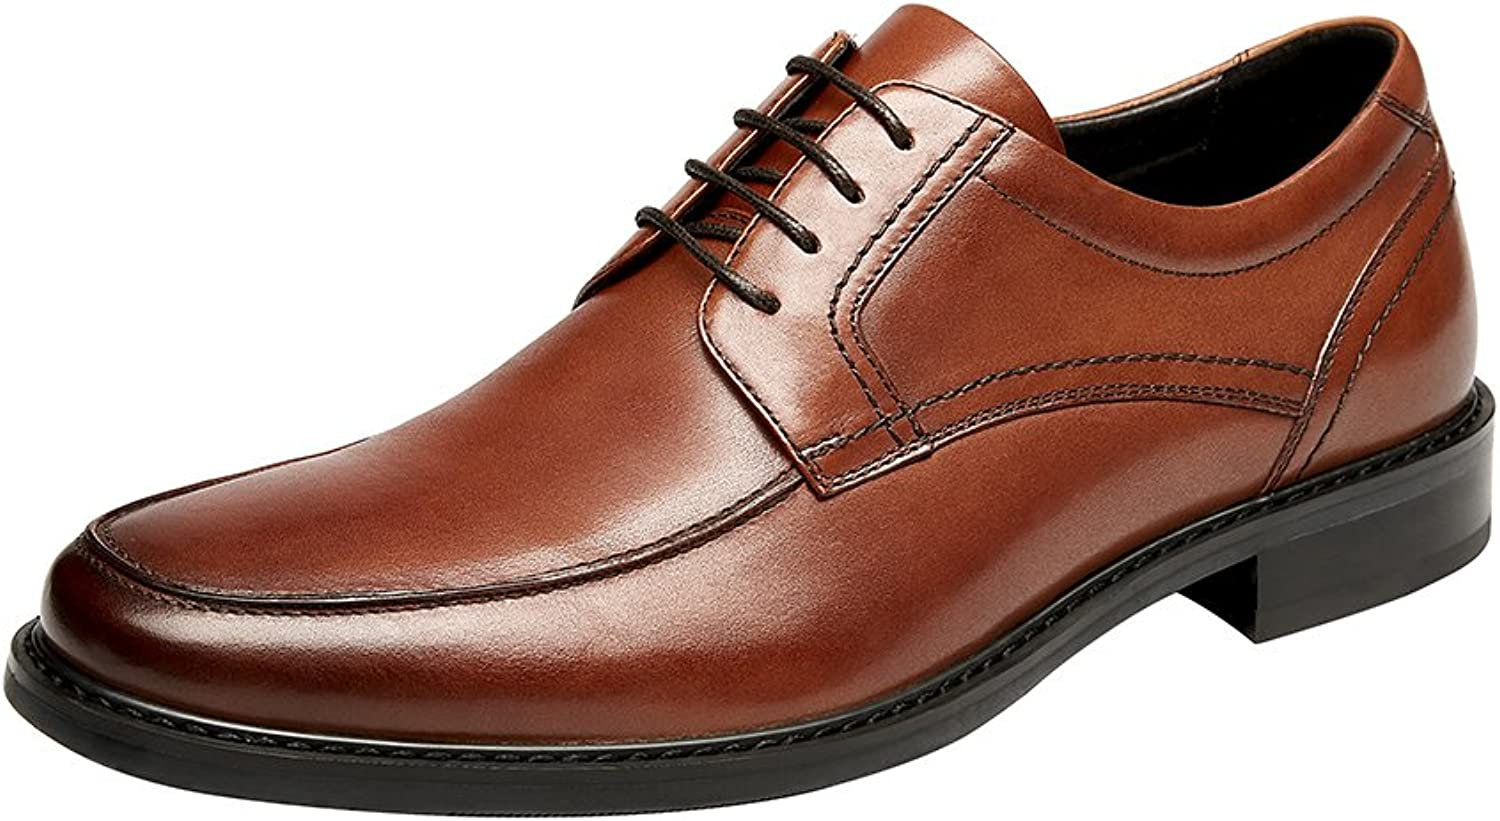 KINGSTEP Men's Genuine Leather Lace-up Business Dress shoes Oxfords